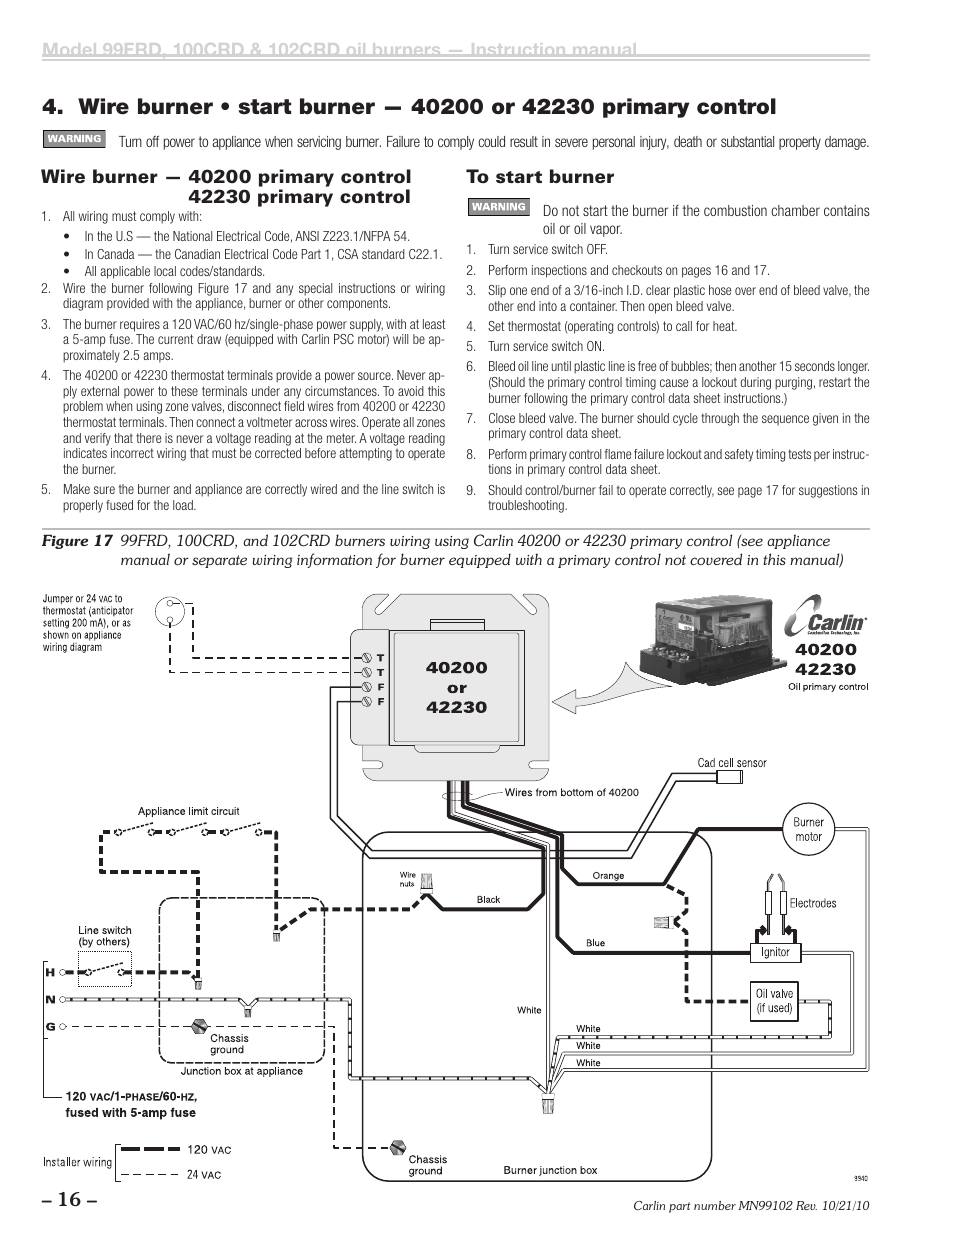 5 wire thermostat wiring diagram 2002 jetta carlin 102crd-99frd-100crd user manual | page 16 / 28